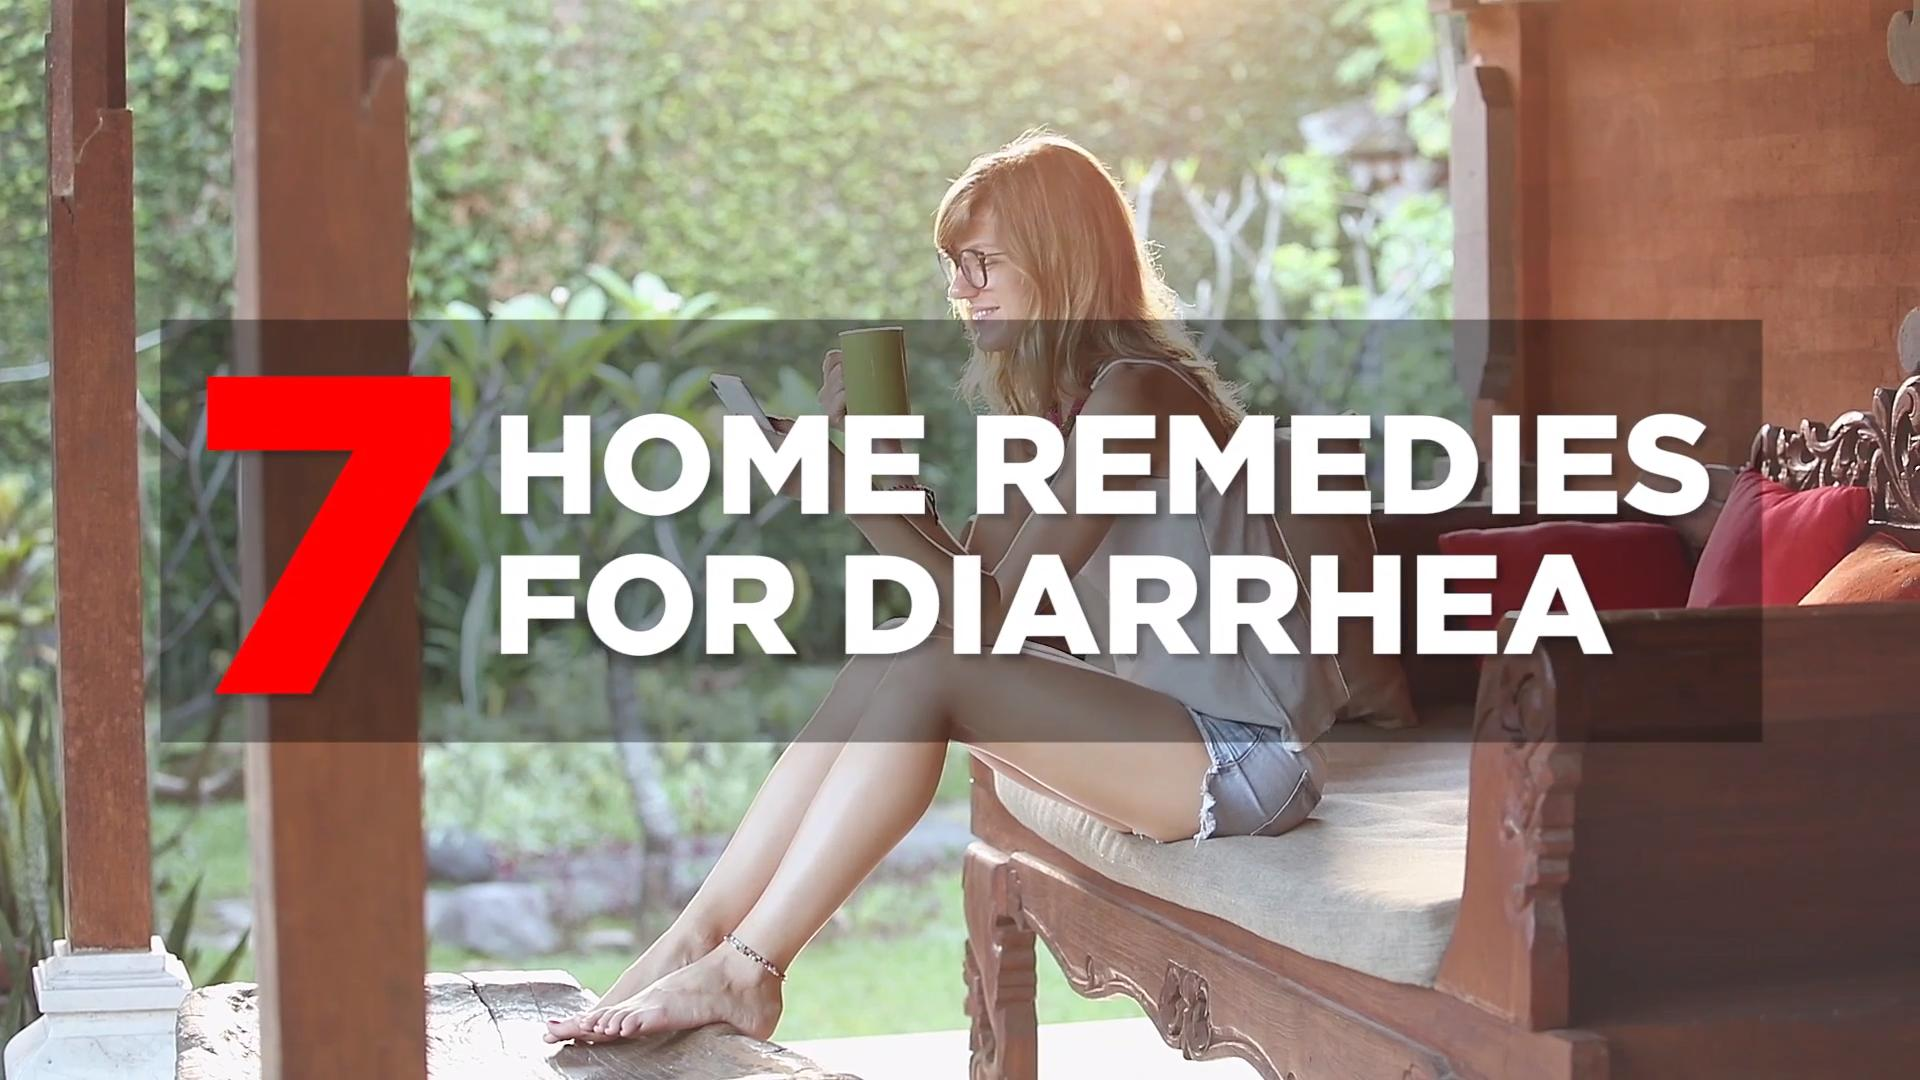 How to stop diarrhea